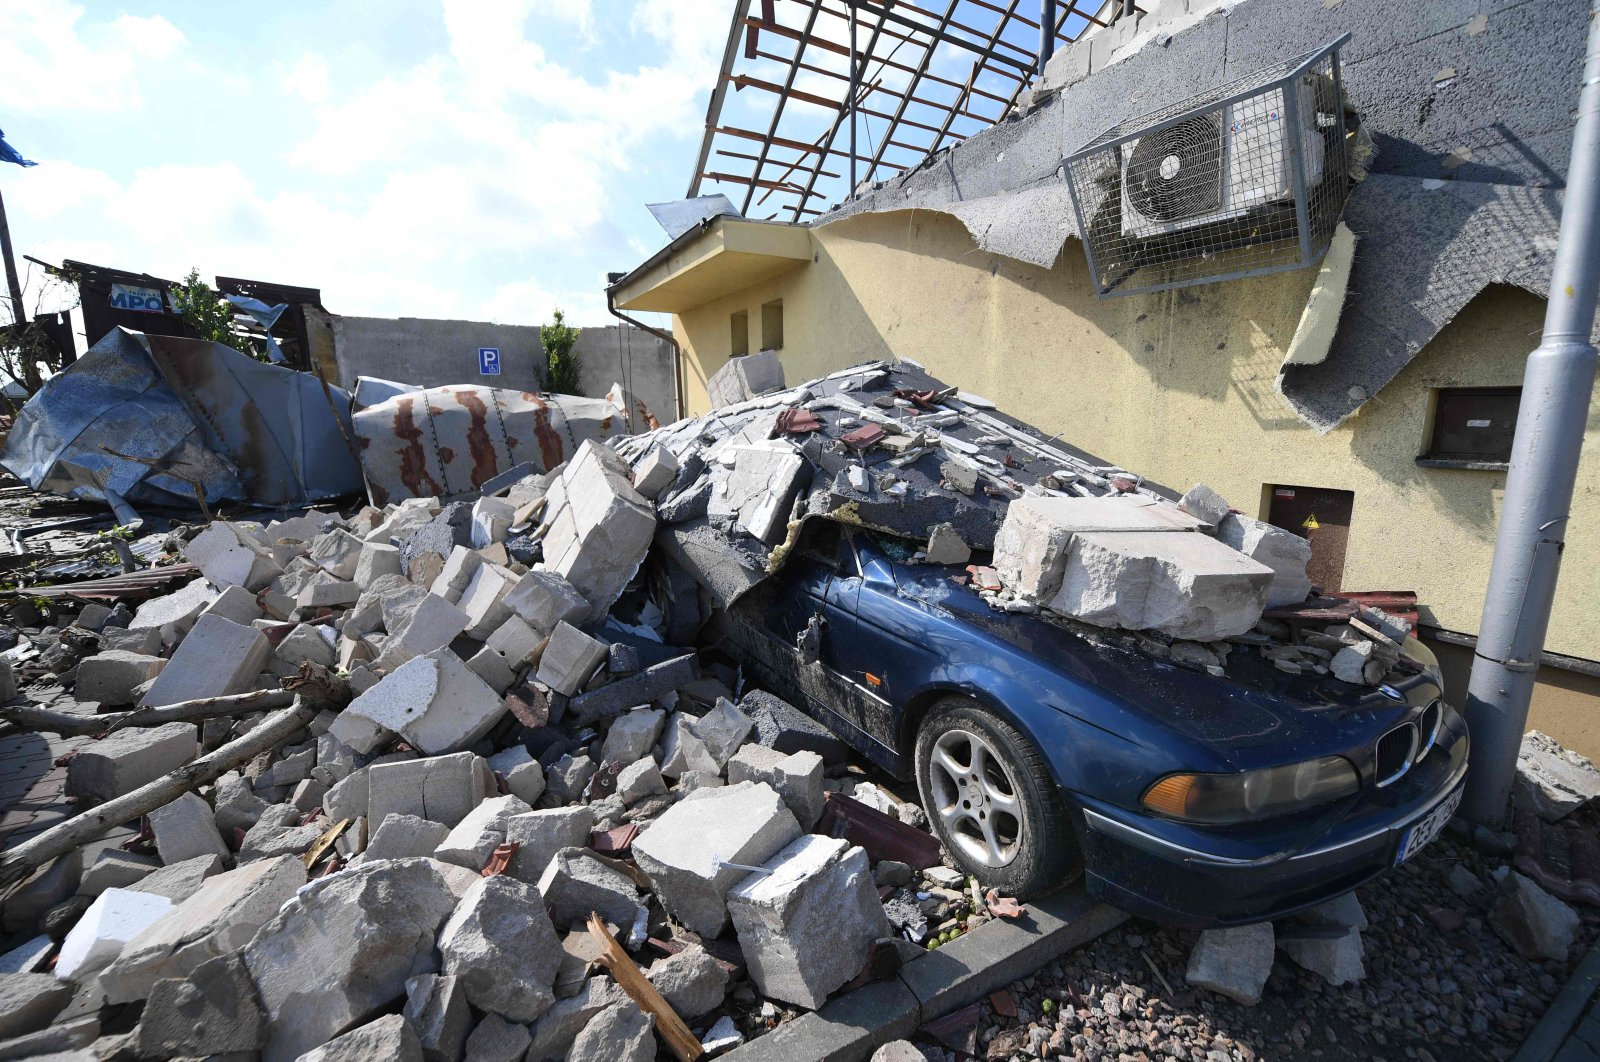 A car is consumed by the rubble of damaged houses after they were hit by a tornado, in the village of Moravska Nova Ves, some 60 kilometers (37 miles) south of Brno, South Moravia, Czech Republic, on June 25, 2021. (AFP Photo)